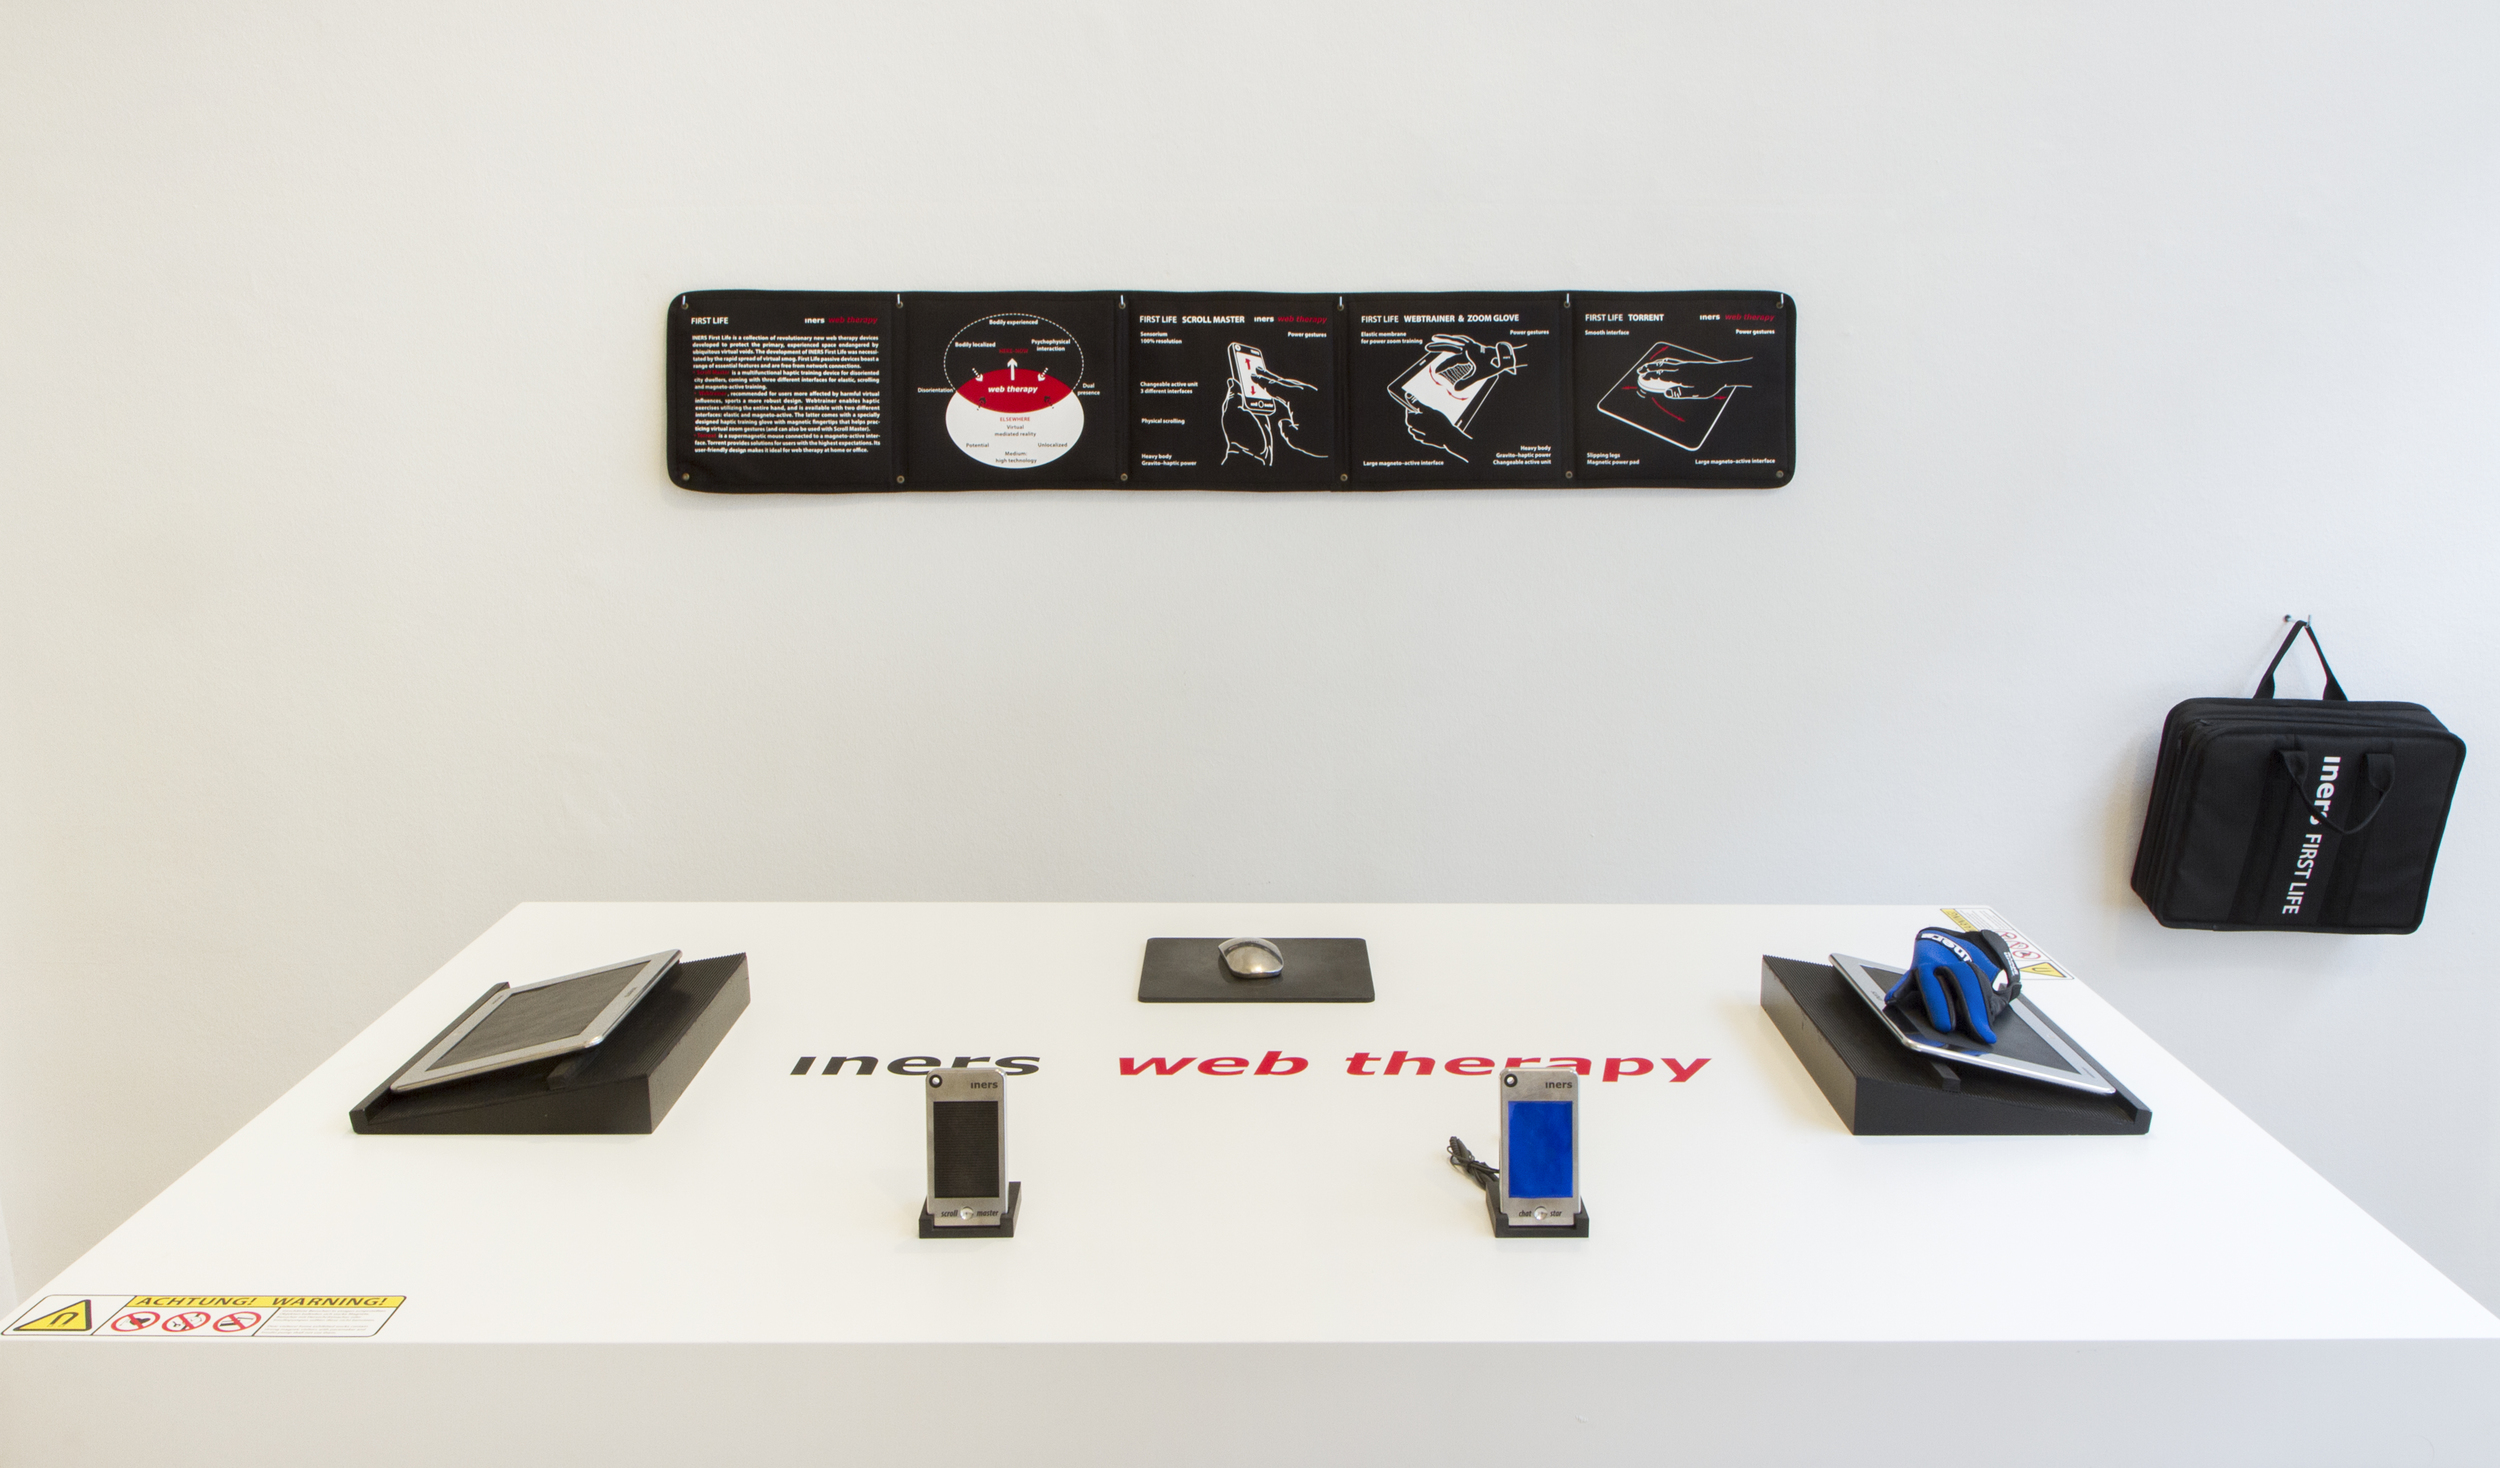 Antal Lakner,  INERS First Life – web therapy.  Scroll master, chat star, zoom glove, webtrainer, torrent. Display for user experience prototype testing, 2012 – 2015. Courtesy: the artist.